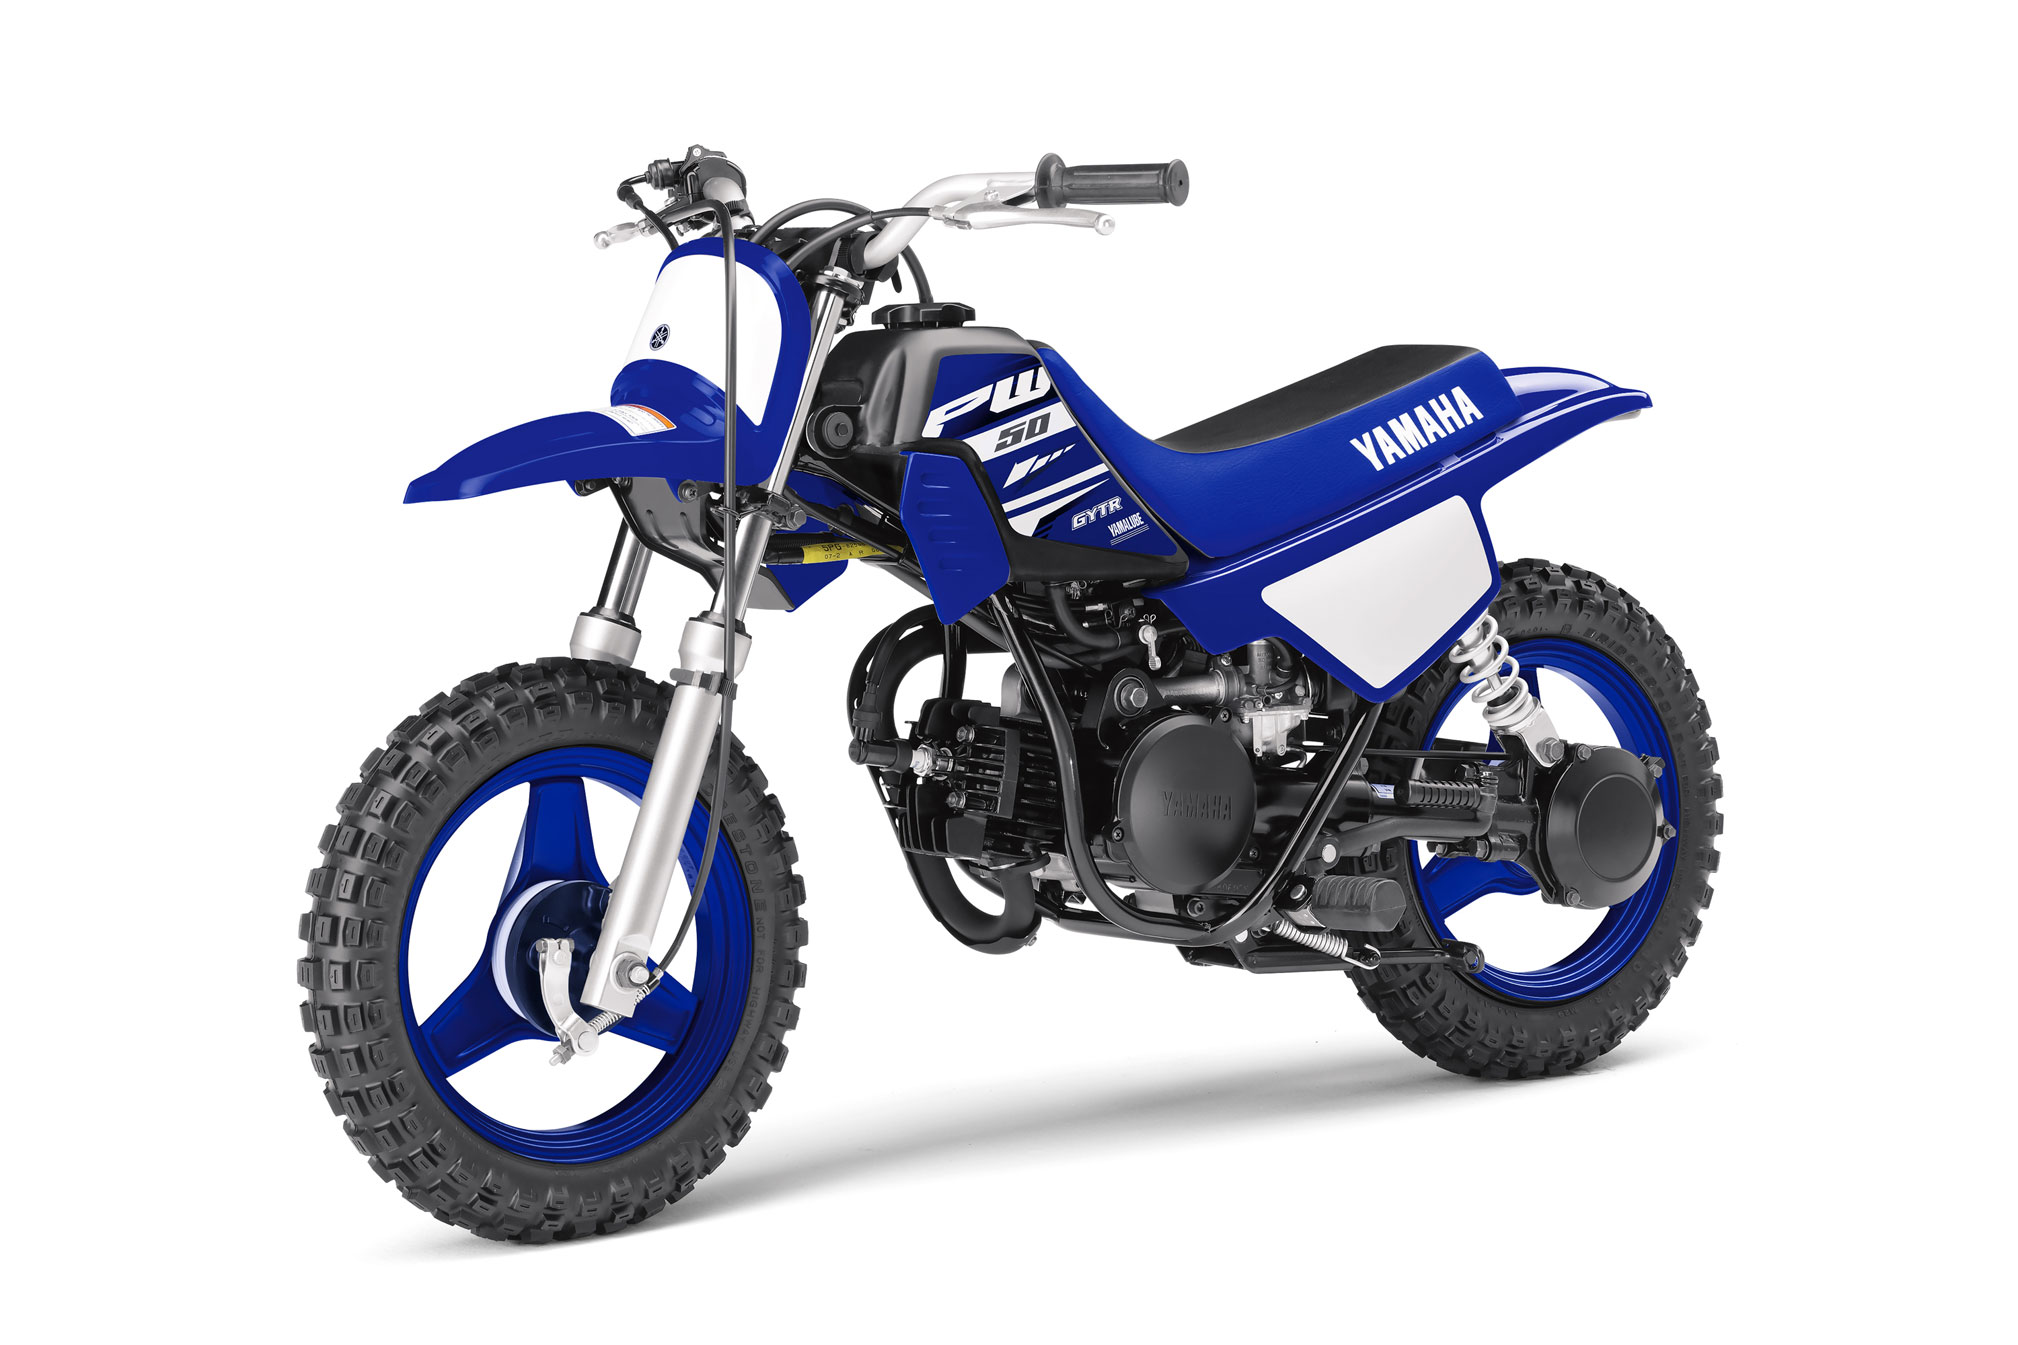 2018 Yamaha Pw50 Review Total Motorcycle